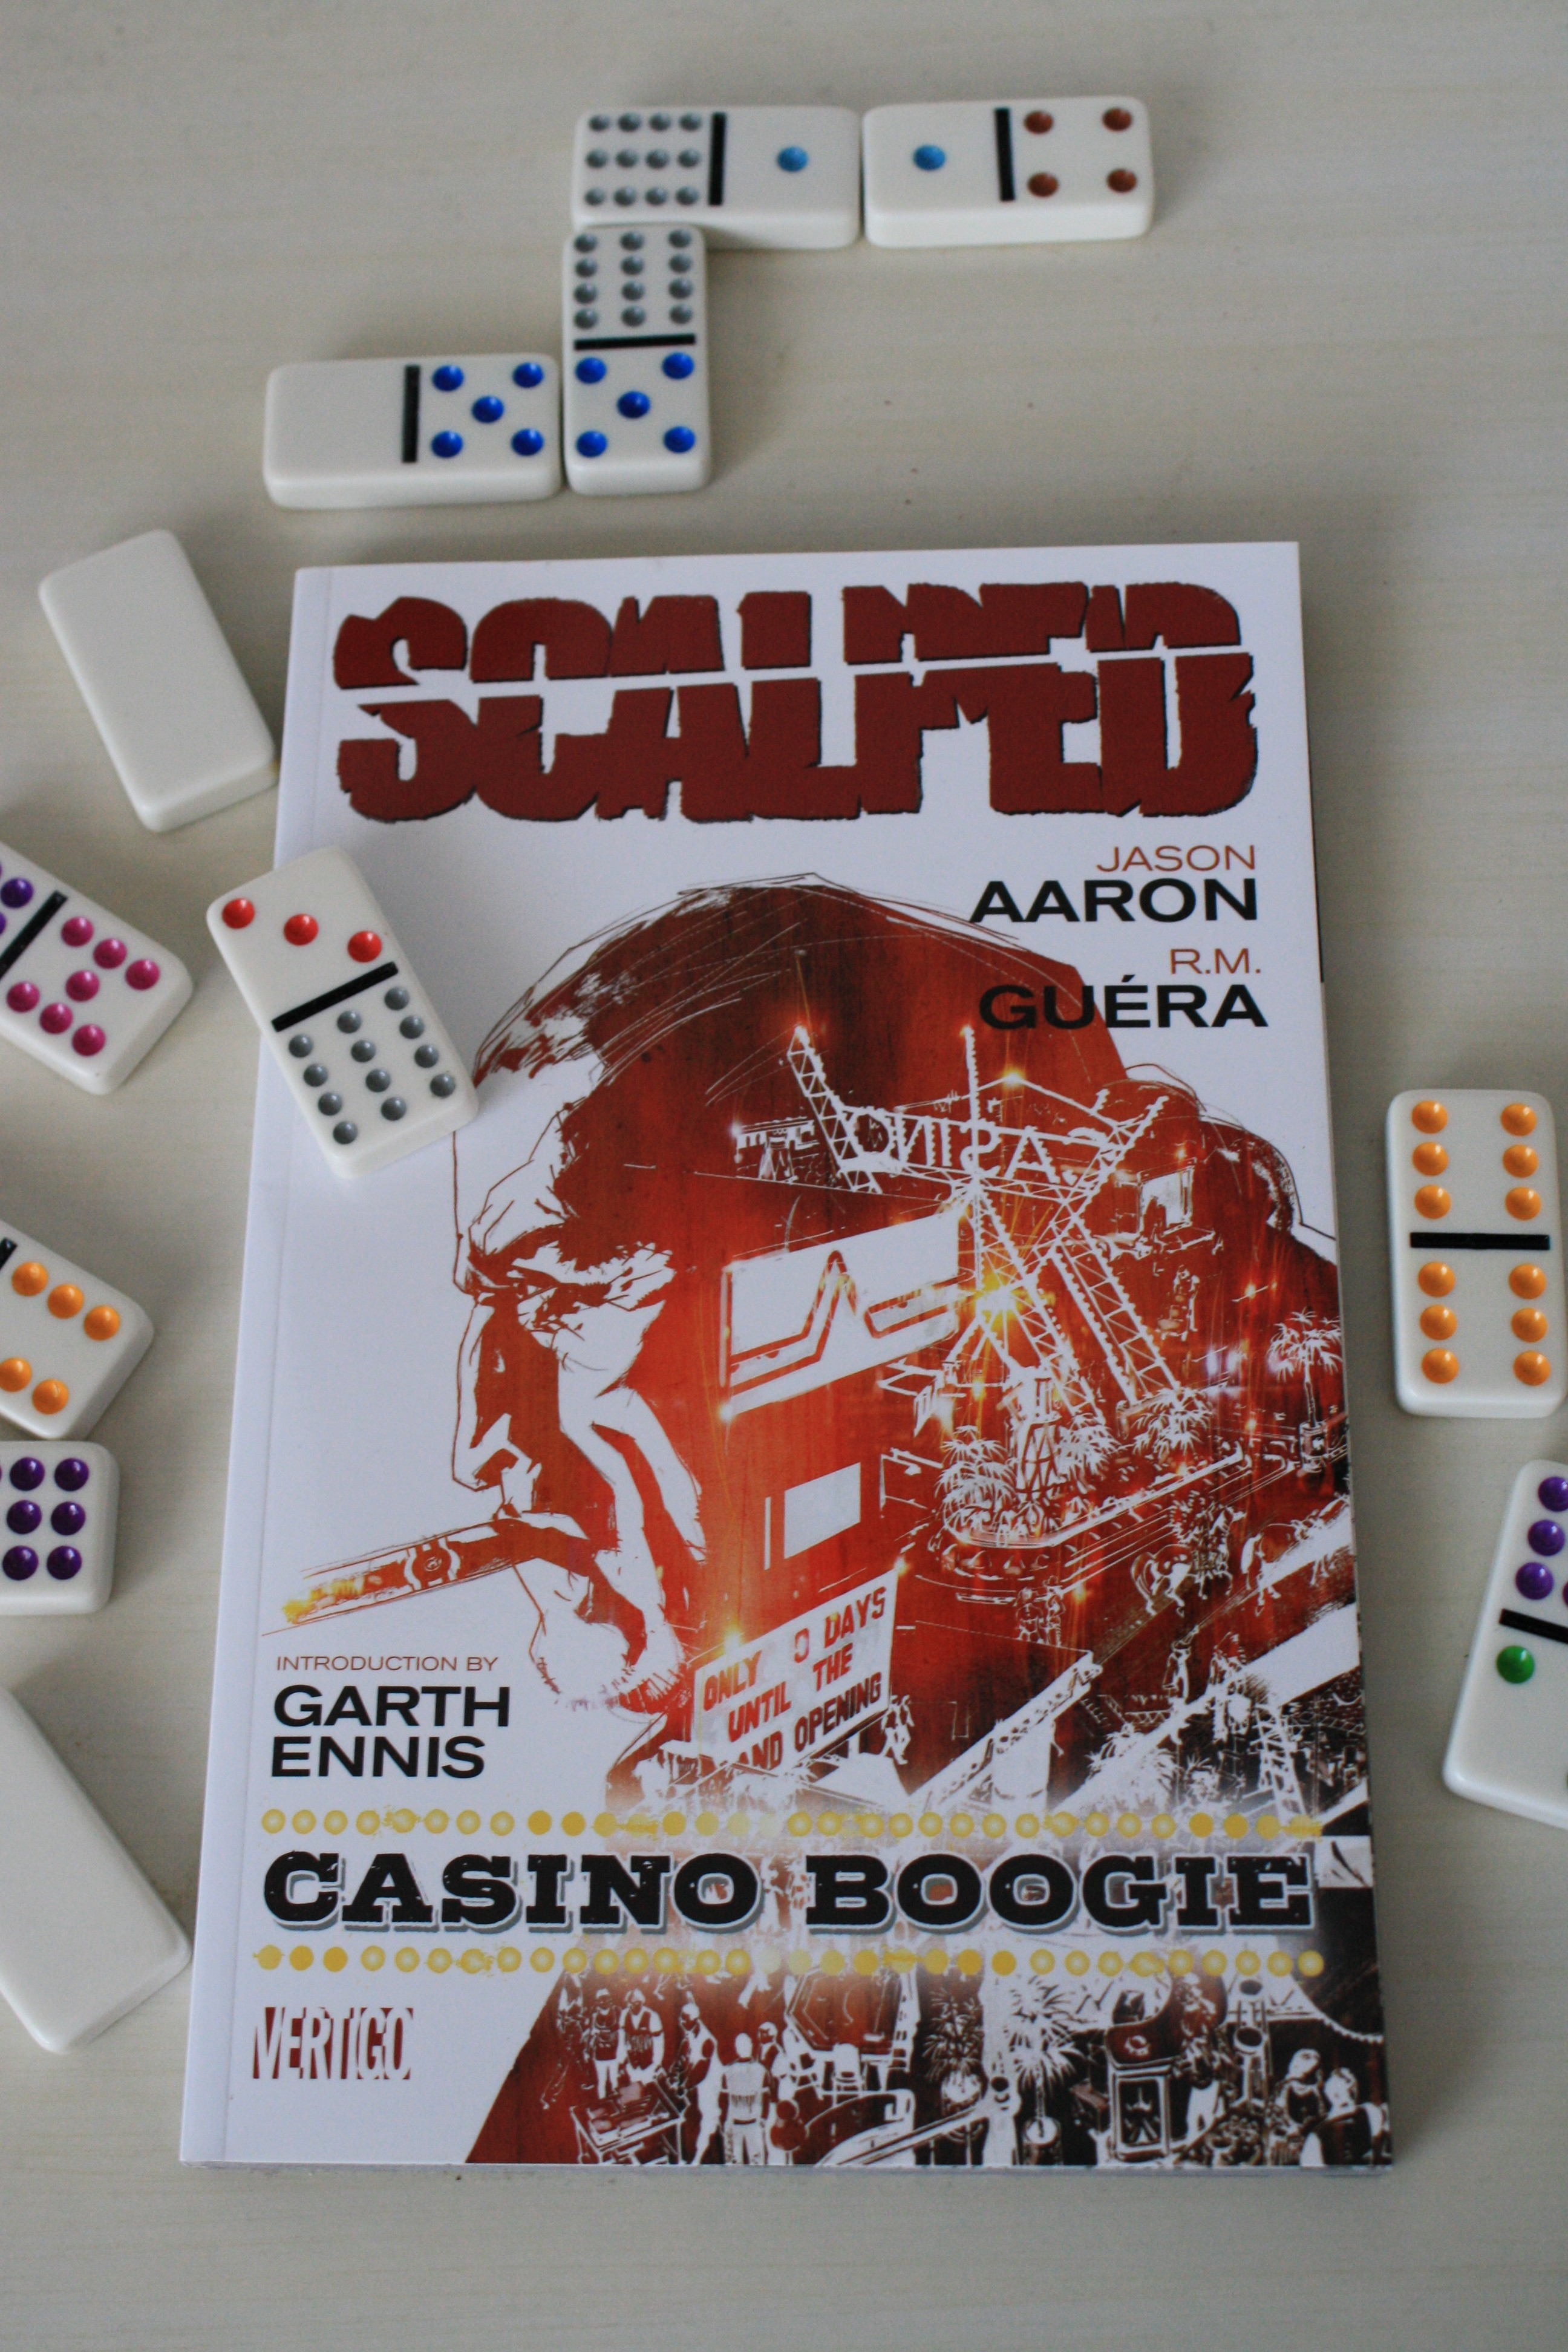 Scalped casino boogie theater pala casino